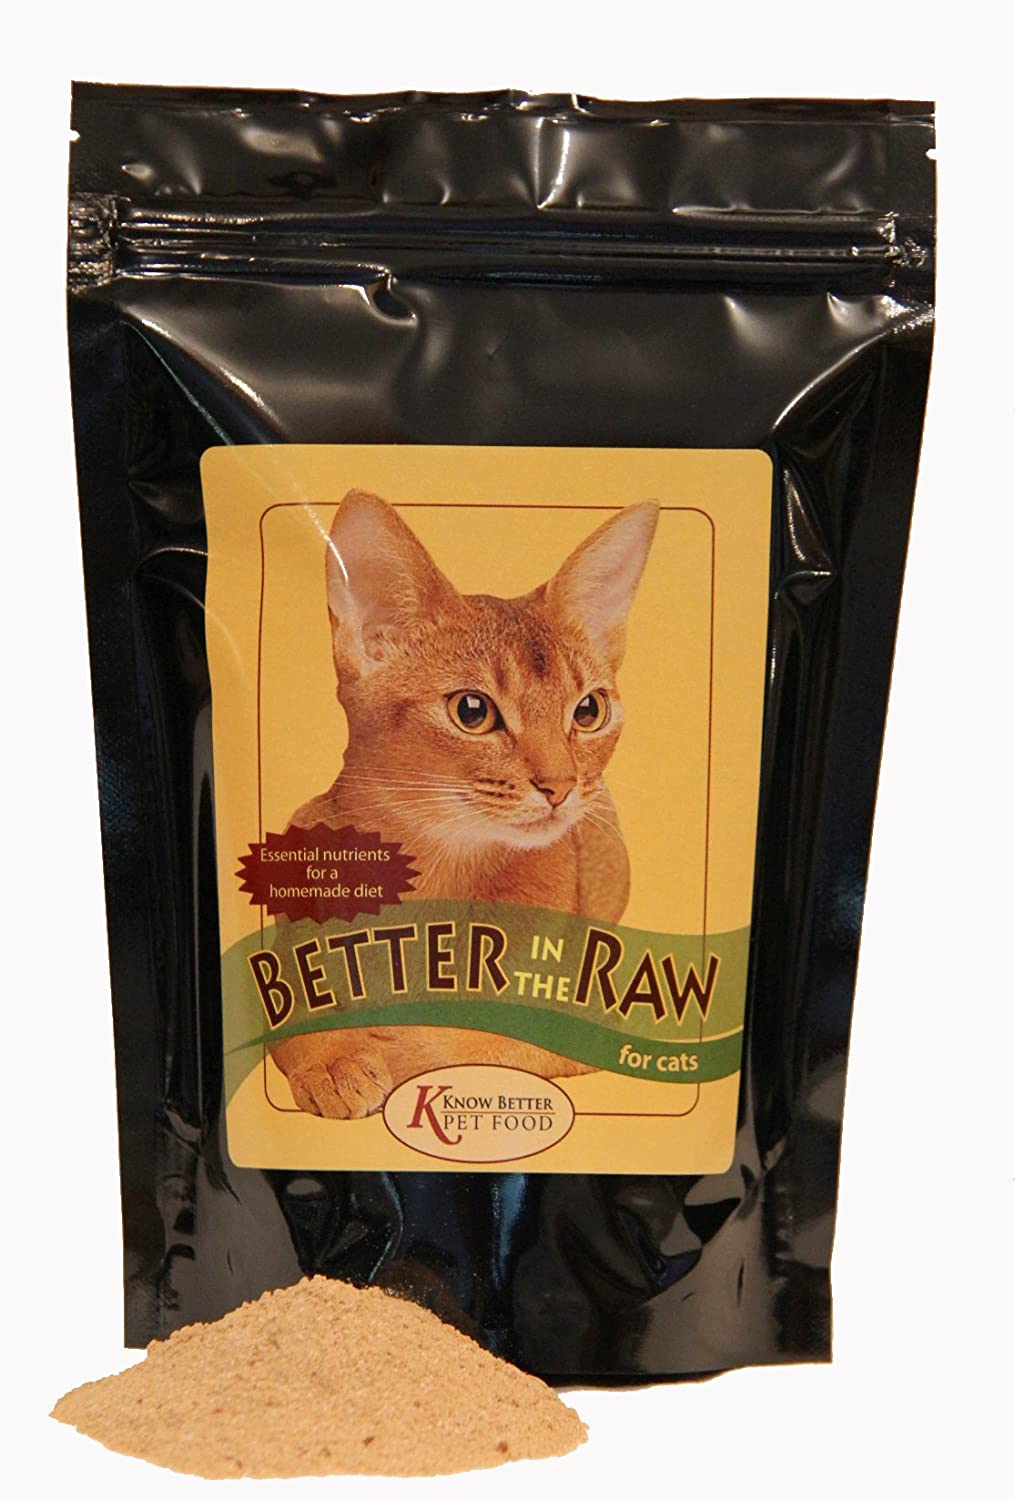 Better in the Raw for Cats - Make your own homemade RAW cat food!